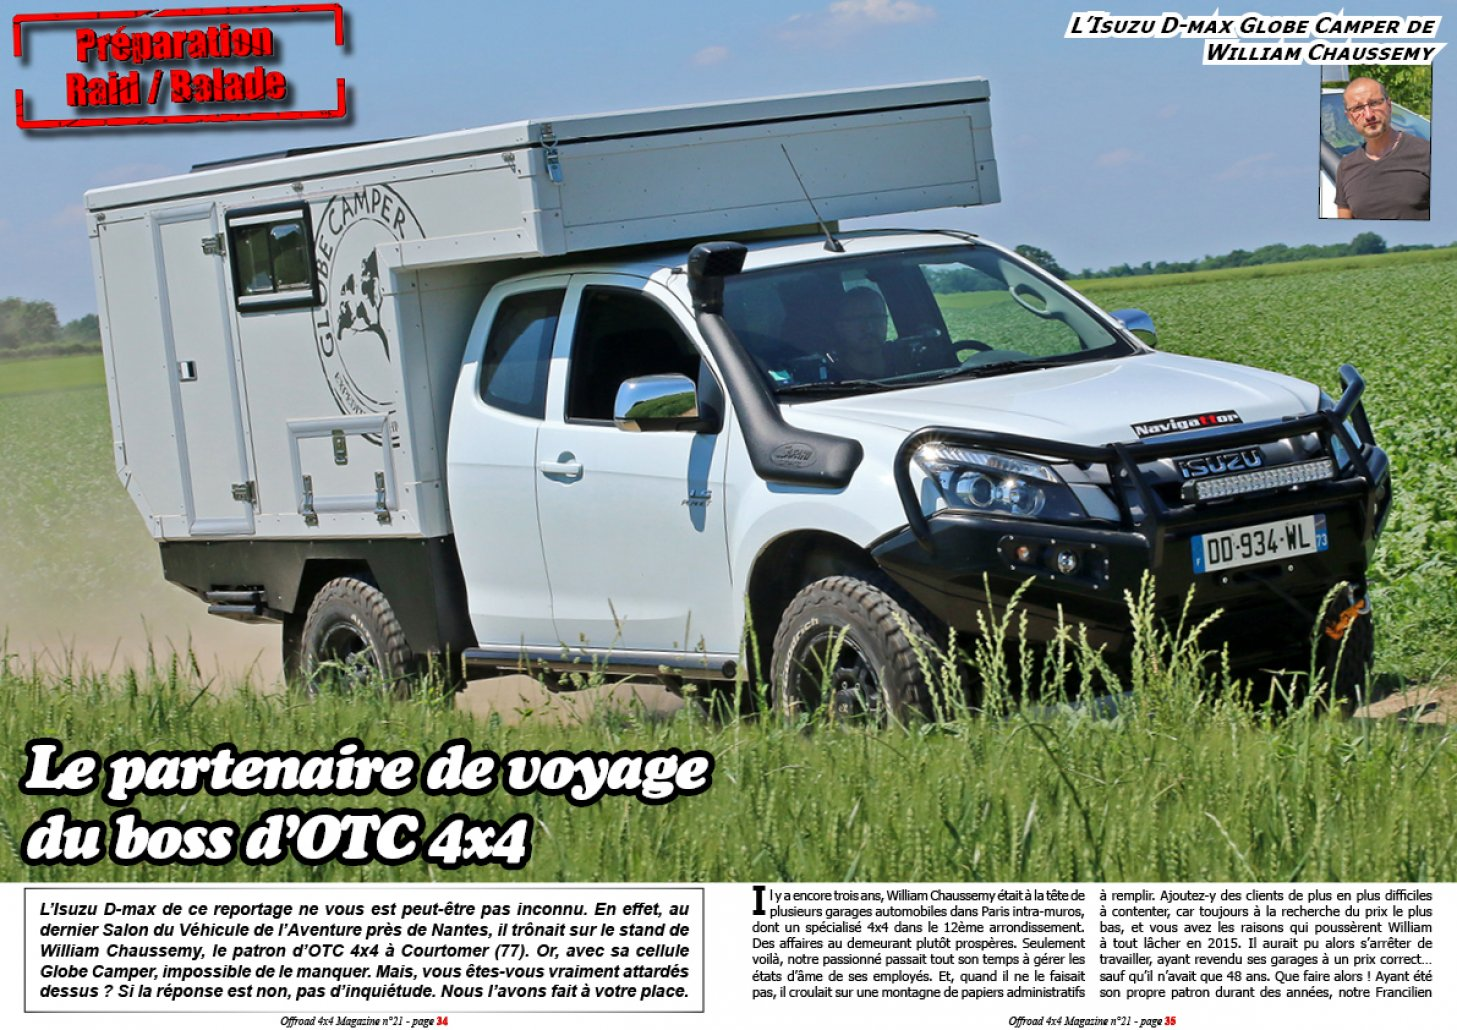 L'Isuzu D-max de William Chaussemy